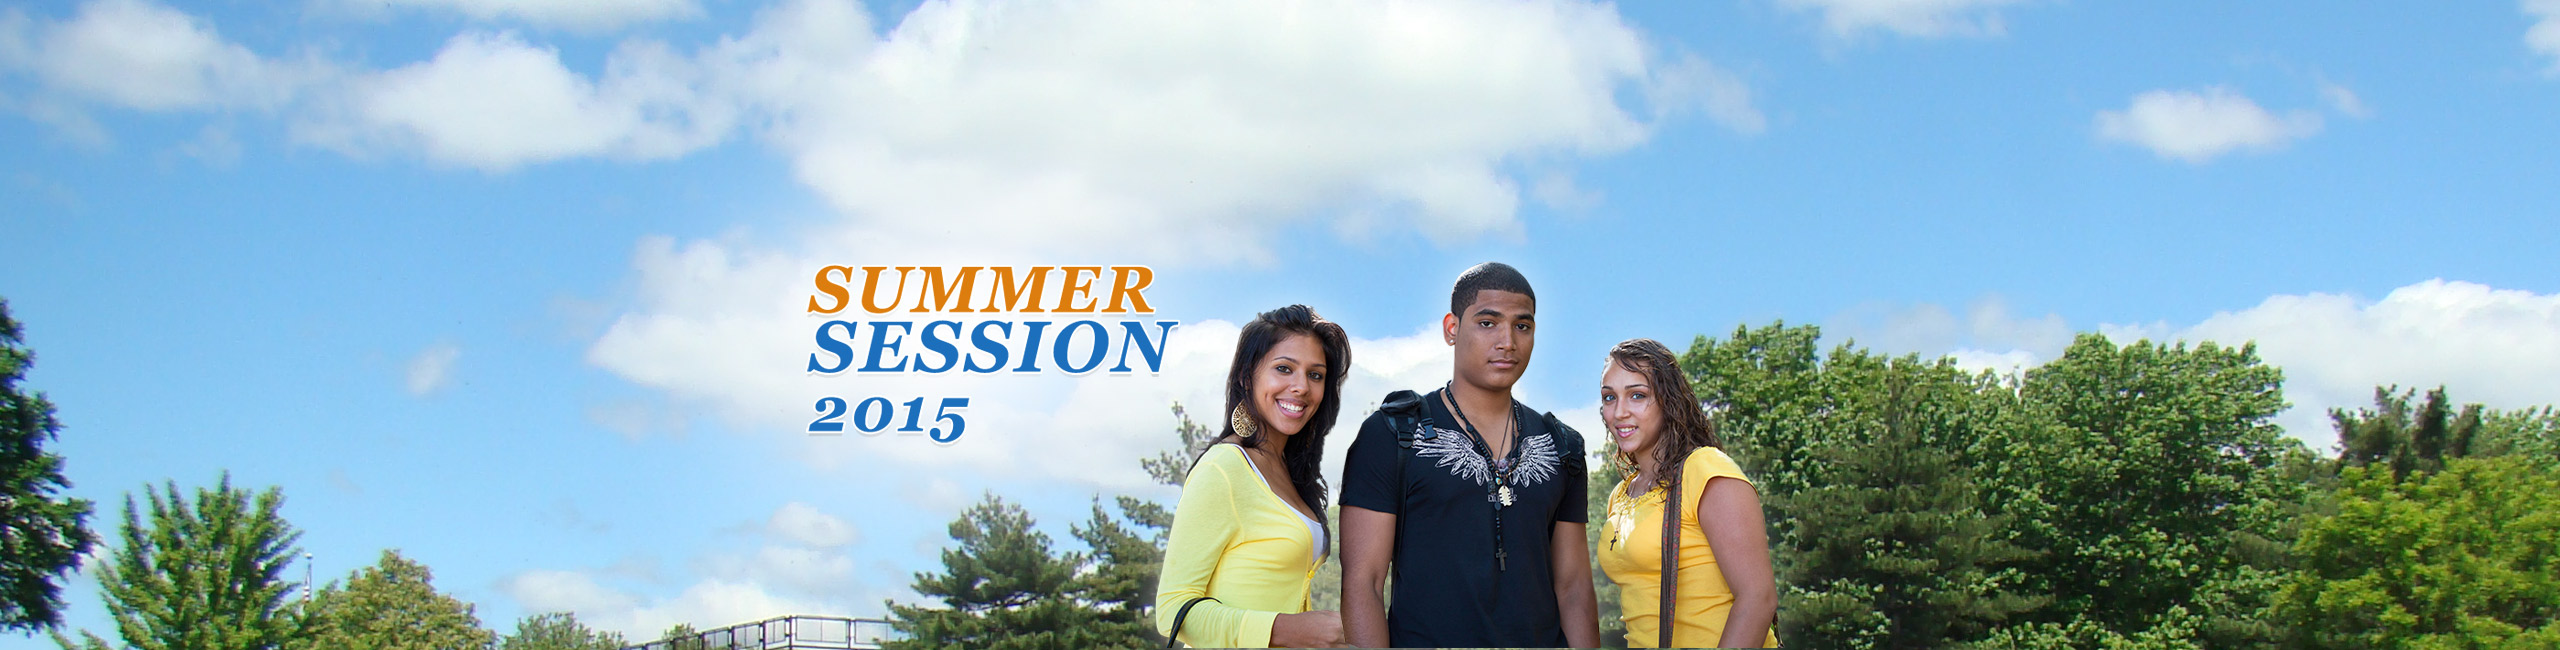 Summer at Lehman College - Registration is Open - Visiting Students Welcome